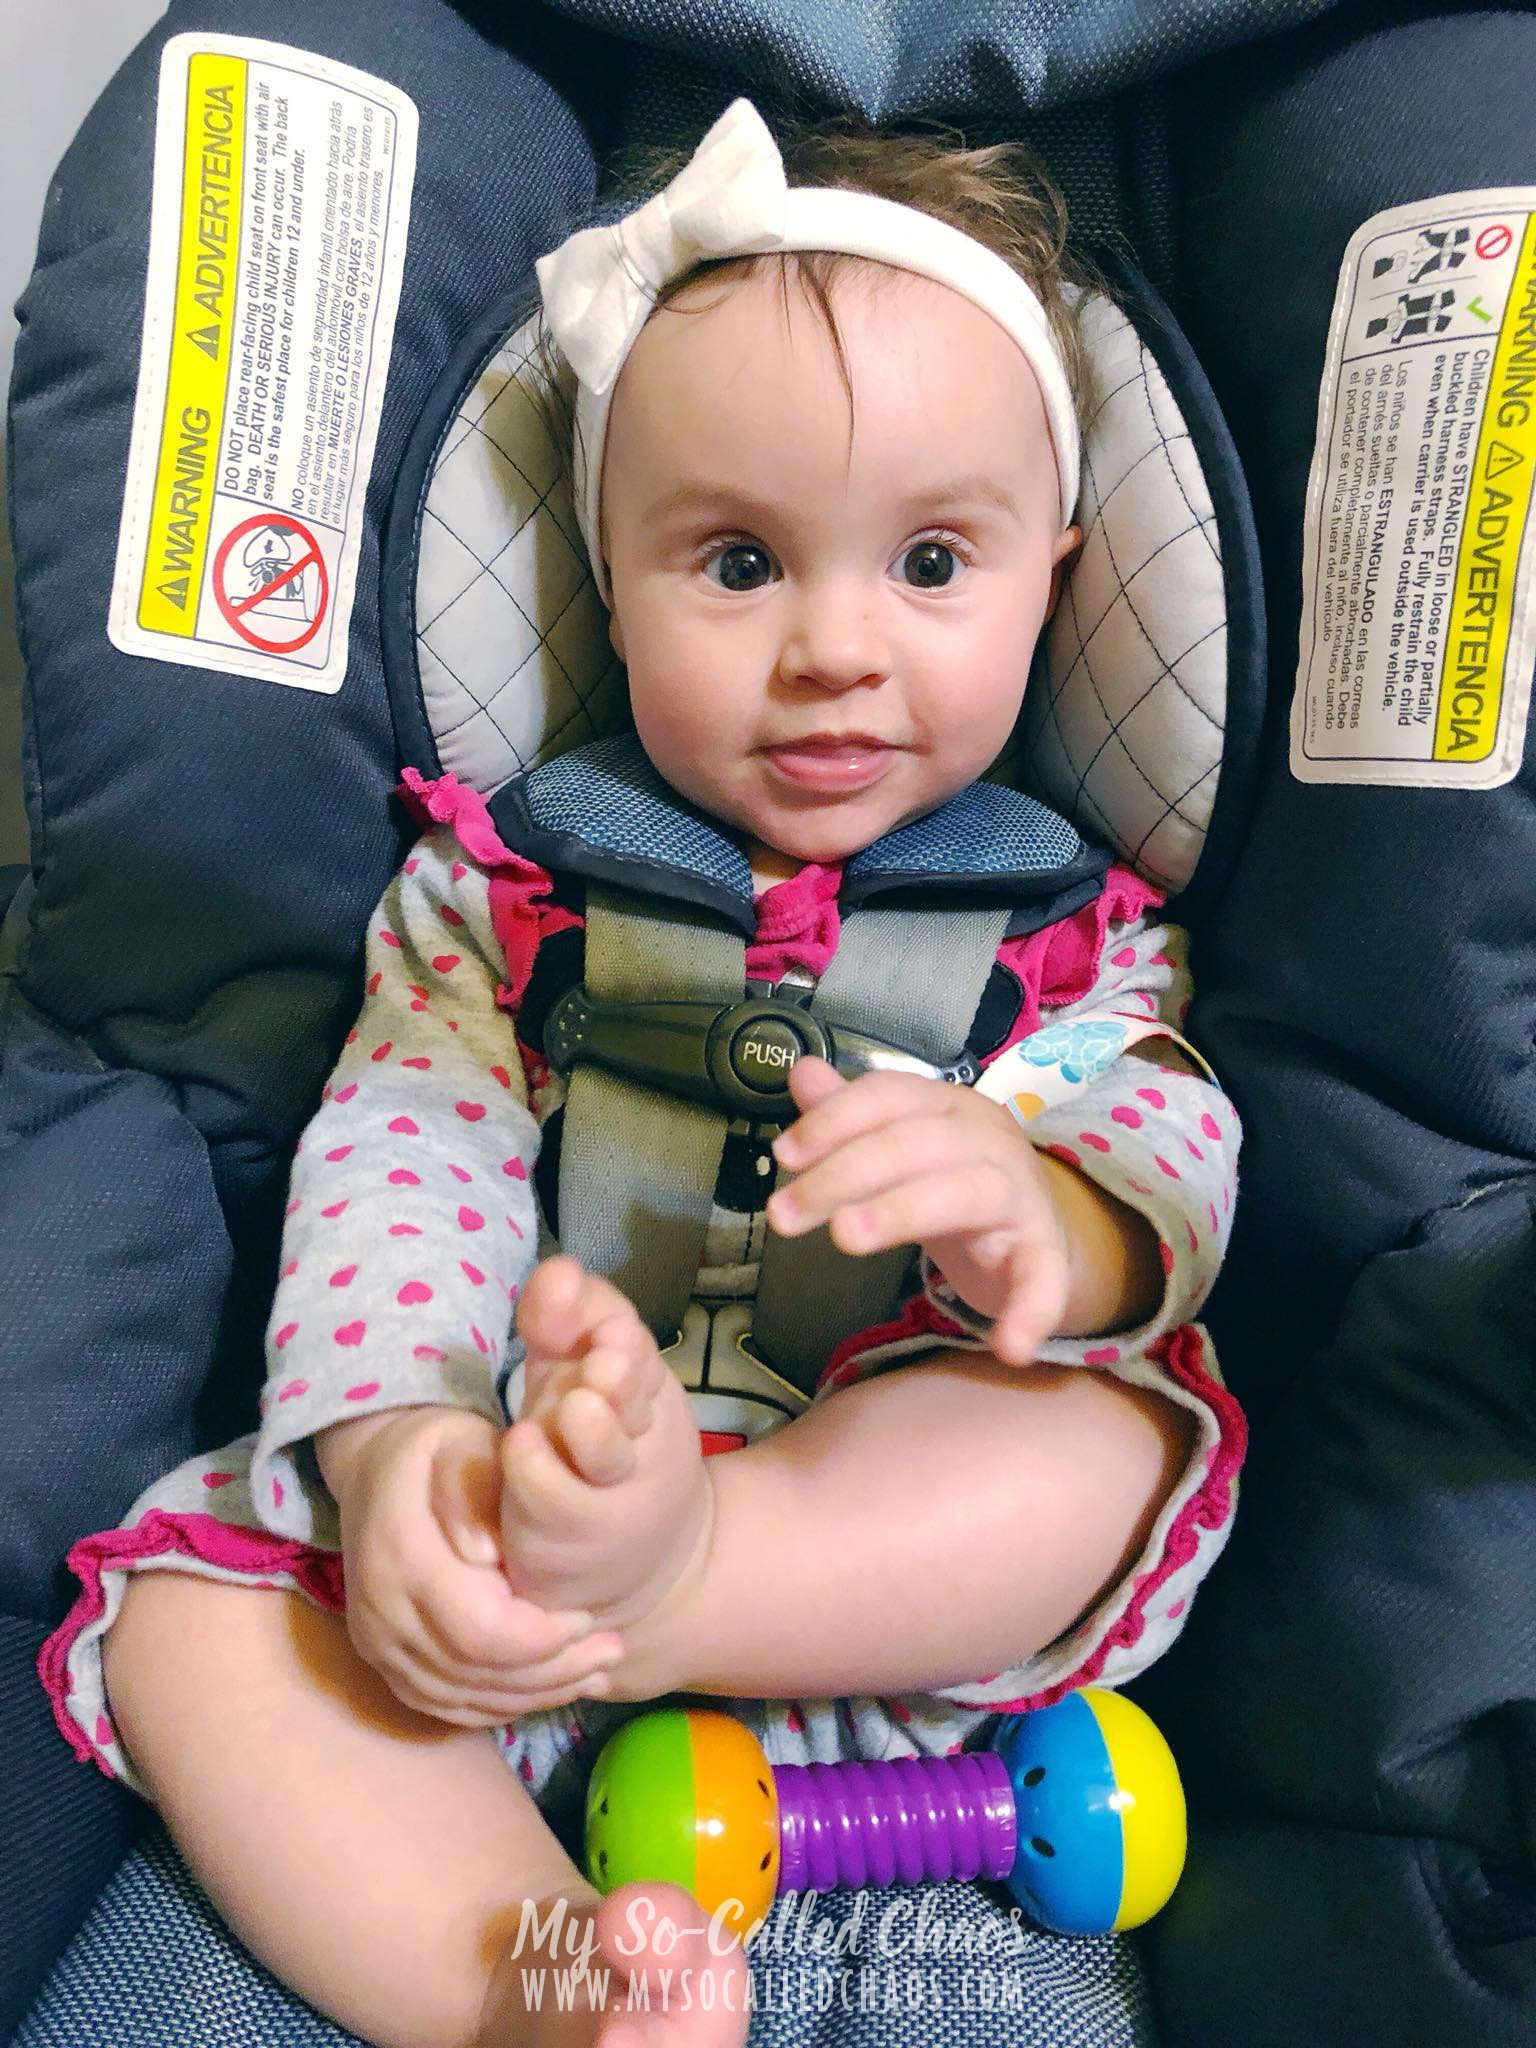 7 month old baby girl in her carseat playing with her feet.